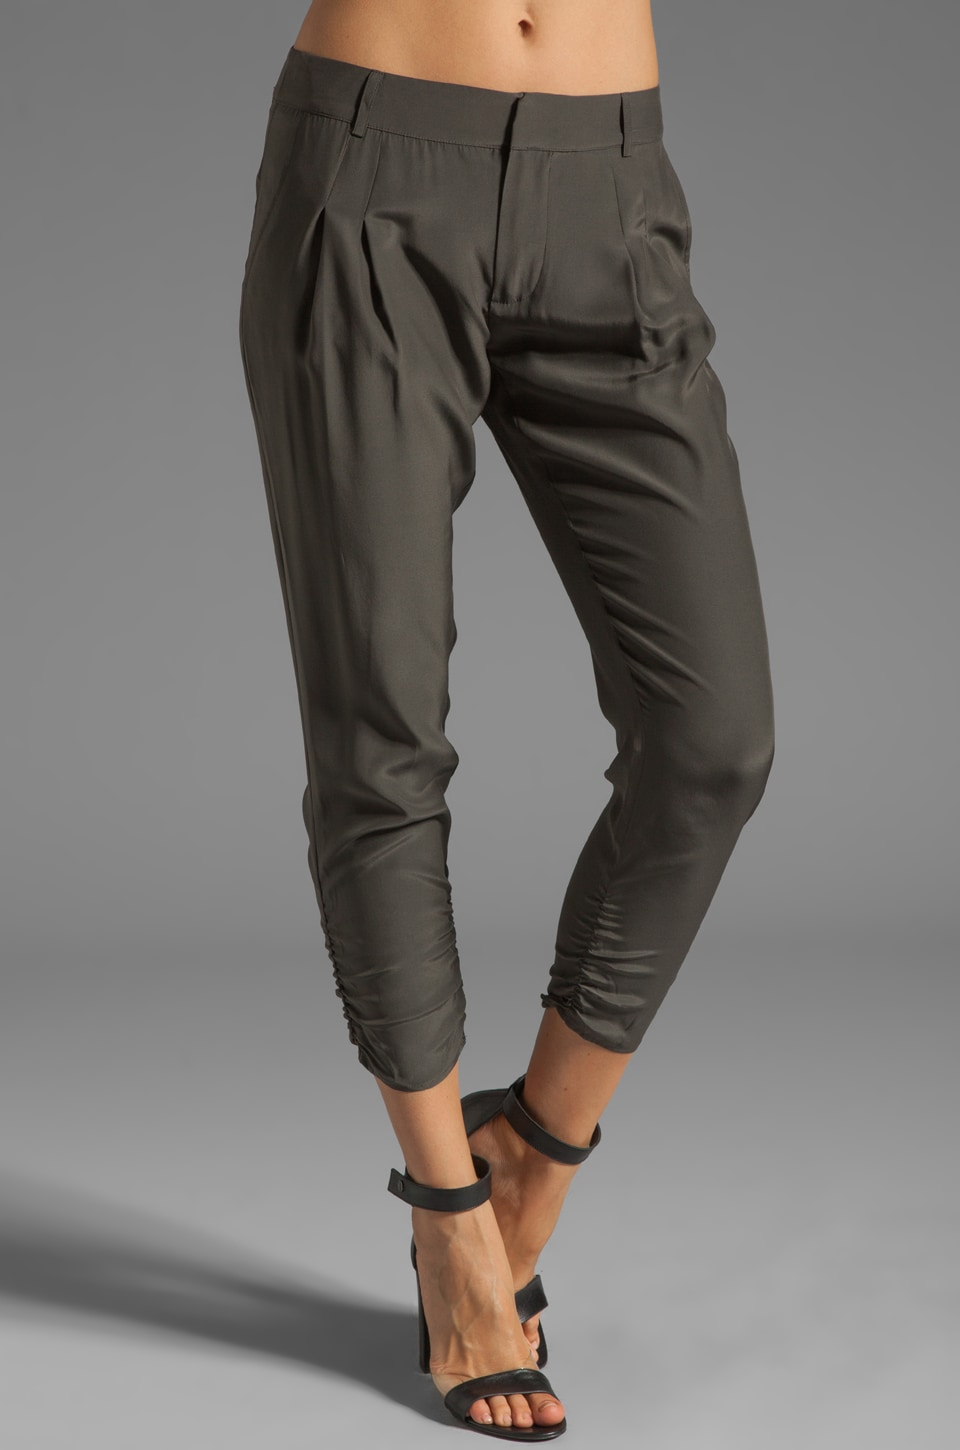 Parker Devlin Pants in Dusk